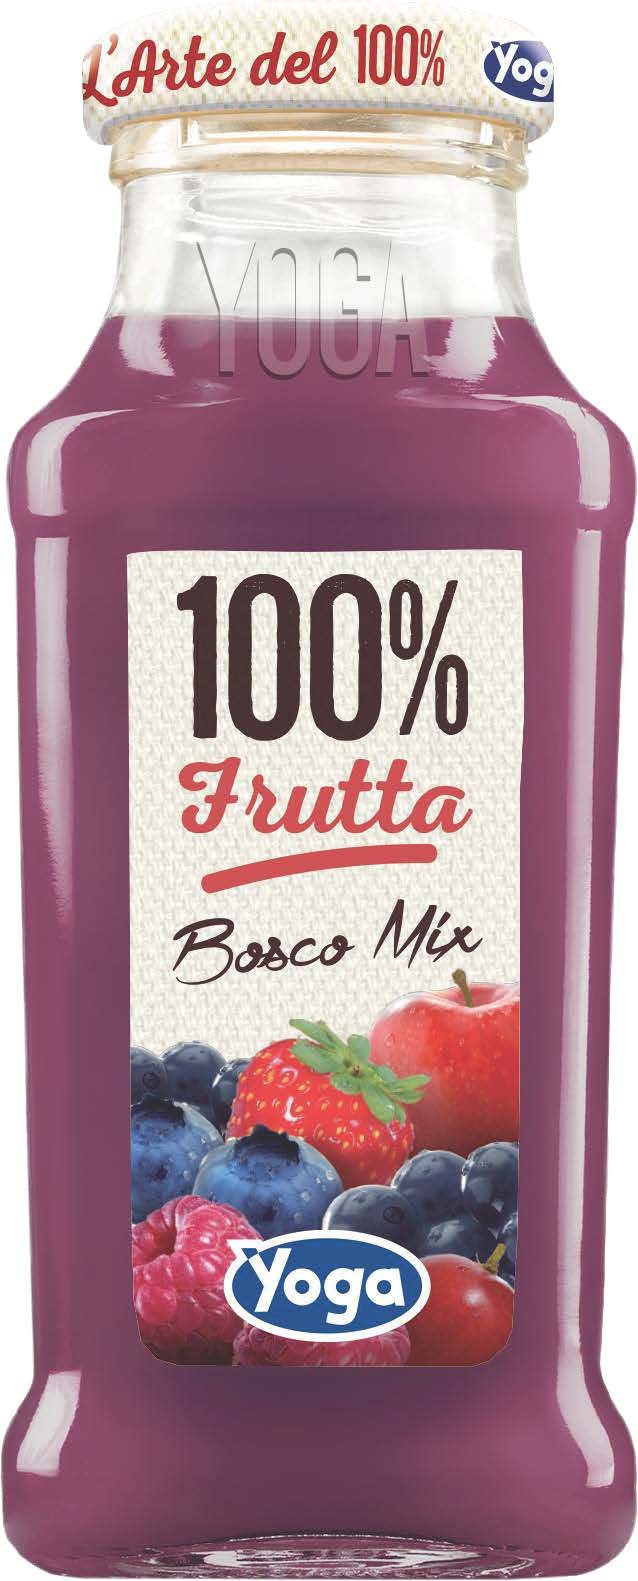 Bosco mix LArte del 100 Yoga